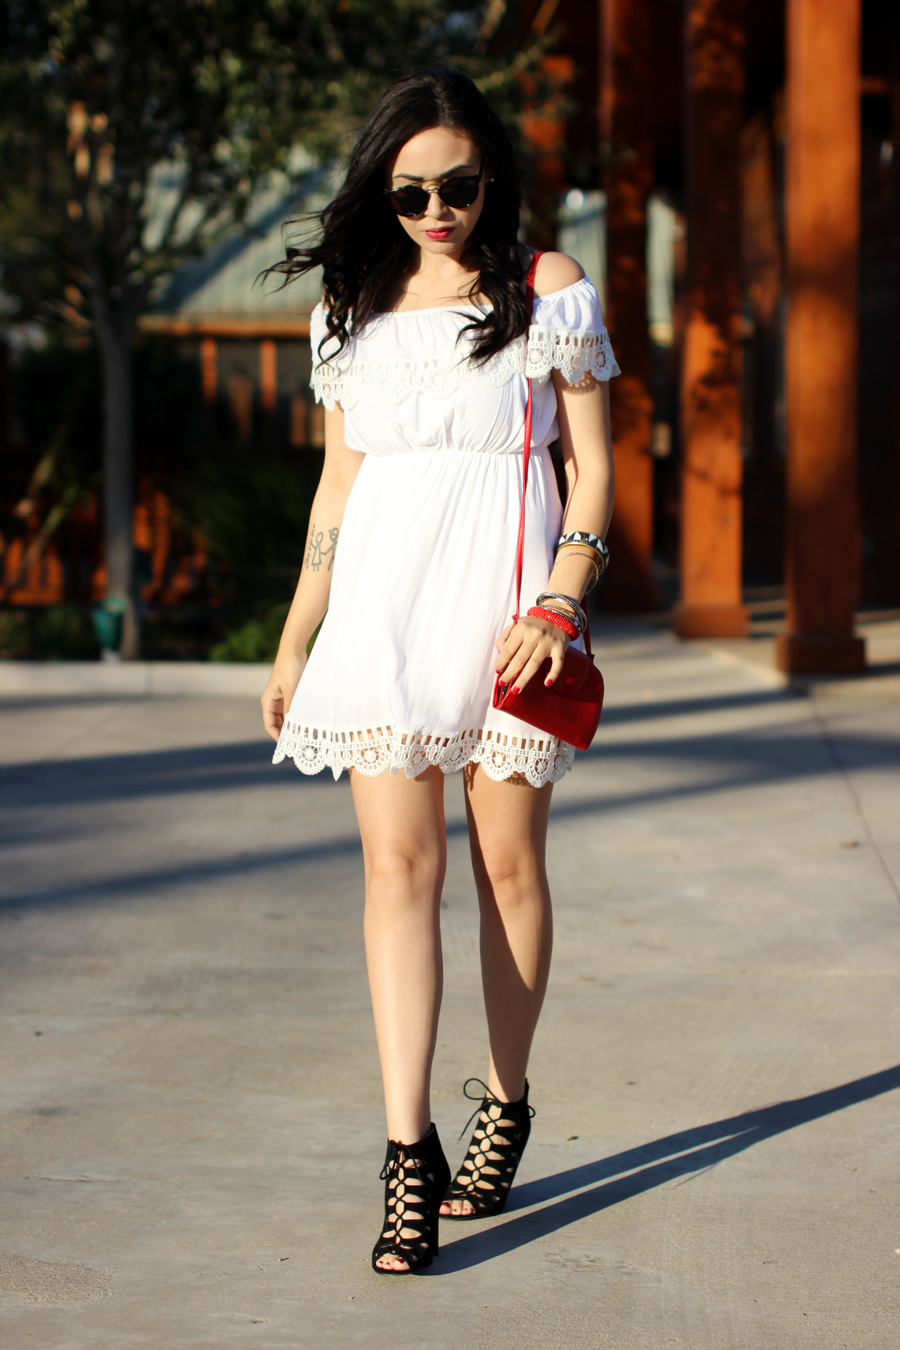 FTT-ROMWE-DRESS-SUNDRESS-LWD-SPANISH-STYLE-LACE-HEELS-11